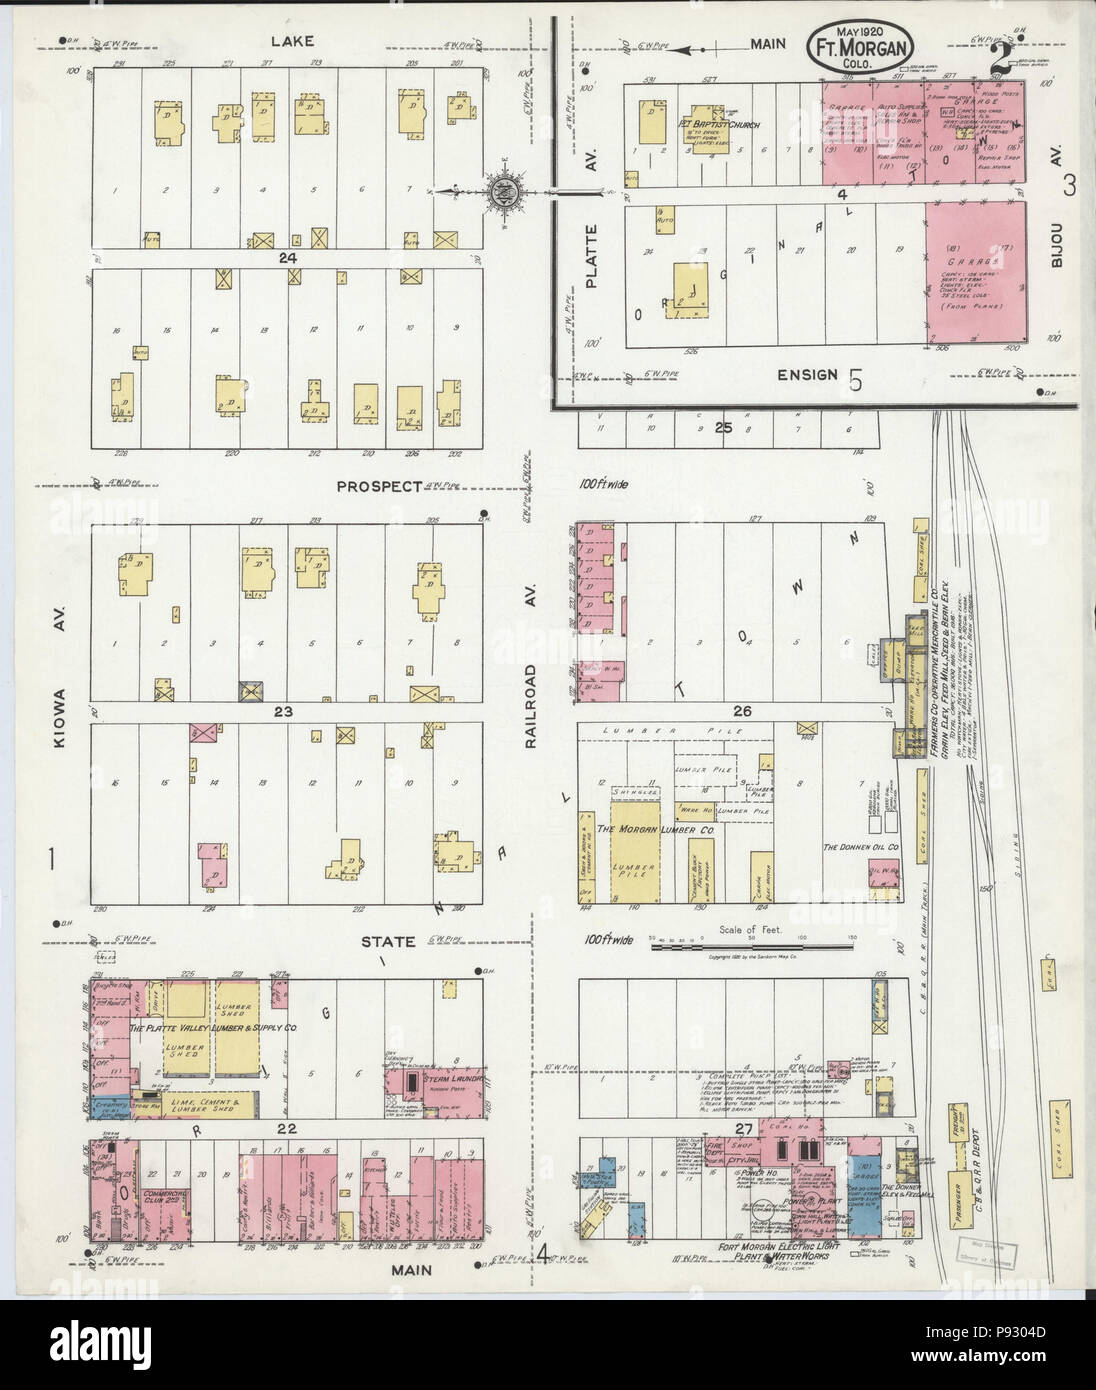 Fort Morgan Colorado Map.498 Sanborn Fire Insurance Map From Fort Morgan Morgan County